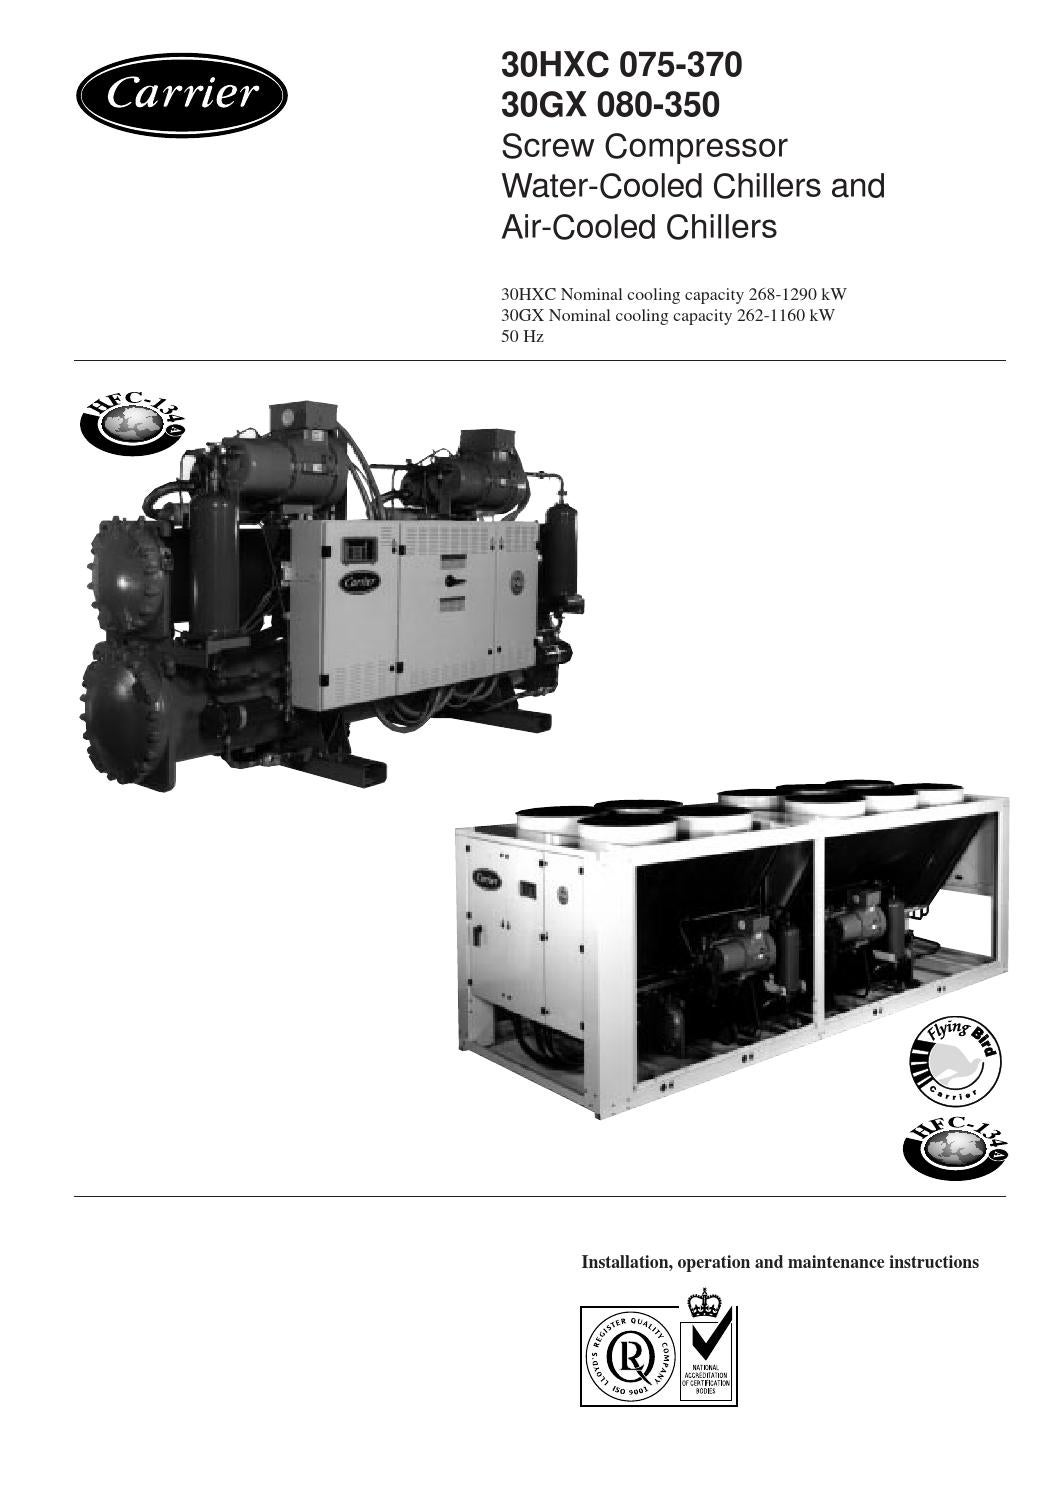 13173 phase1 by servis carrier plze s r o issuu rh issuu com Carrier Air Cooled Chillers HVAC Carrier Chiller Manuals